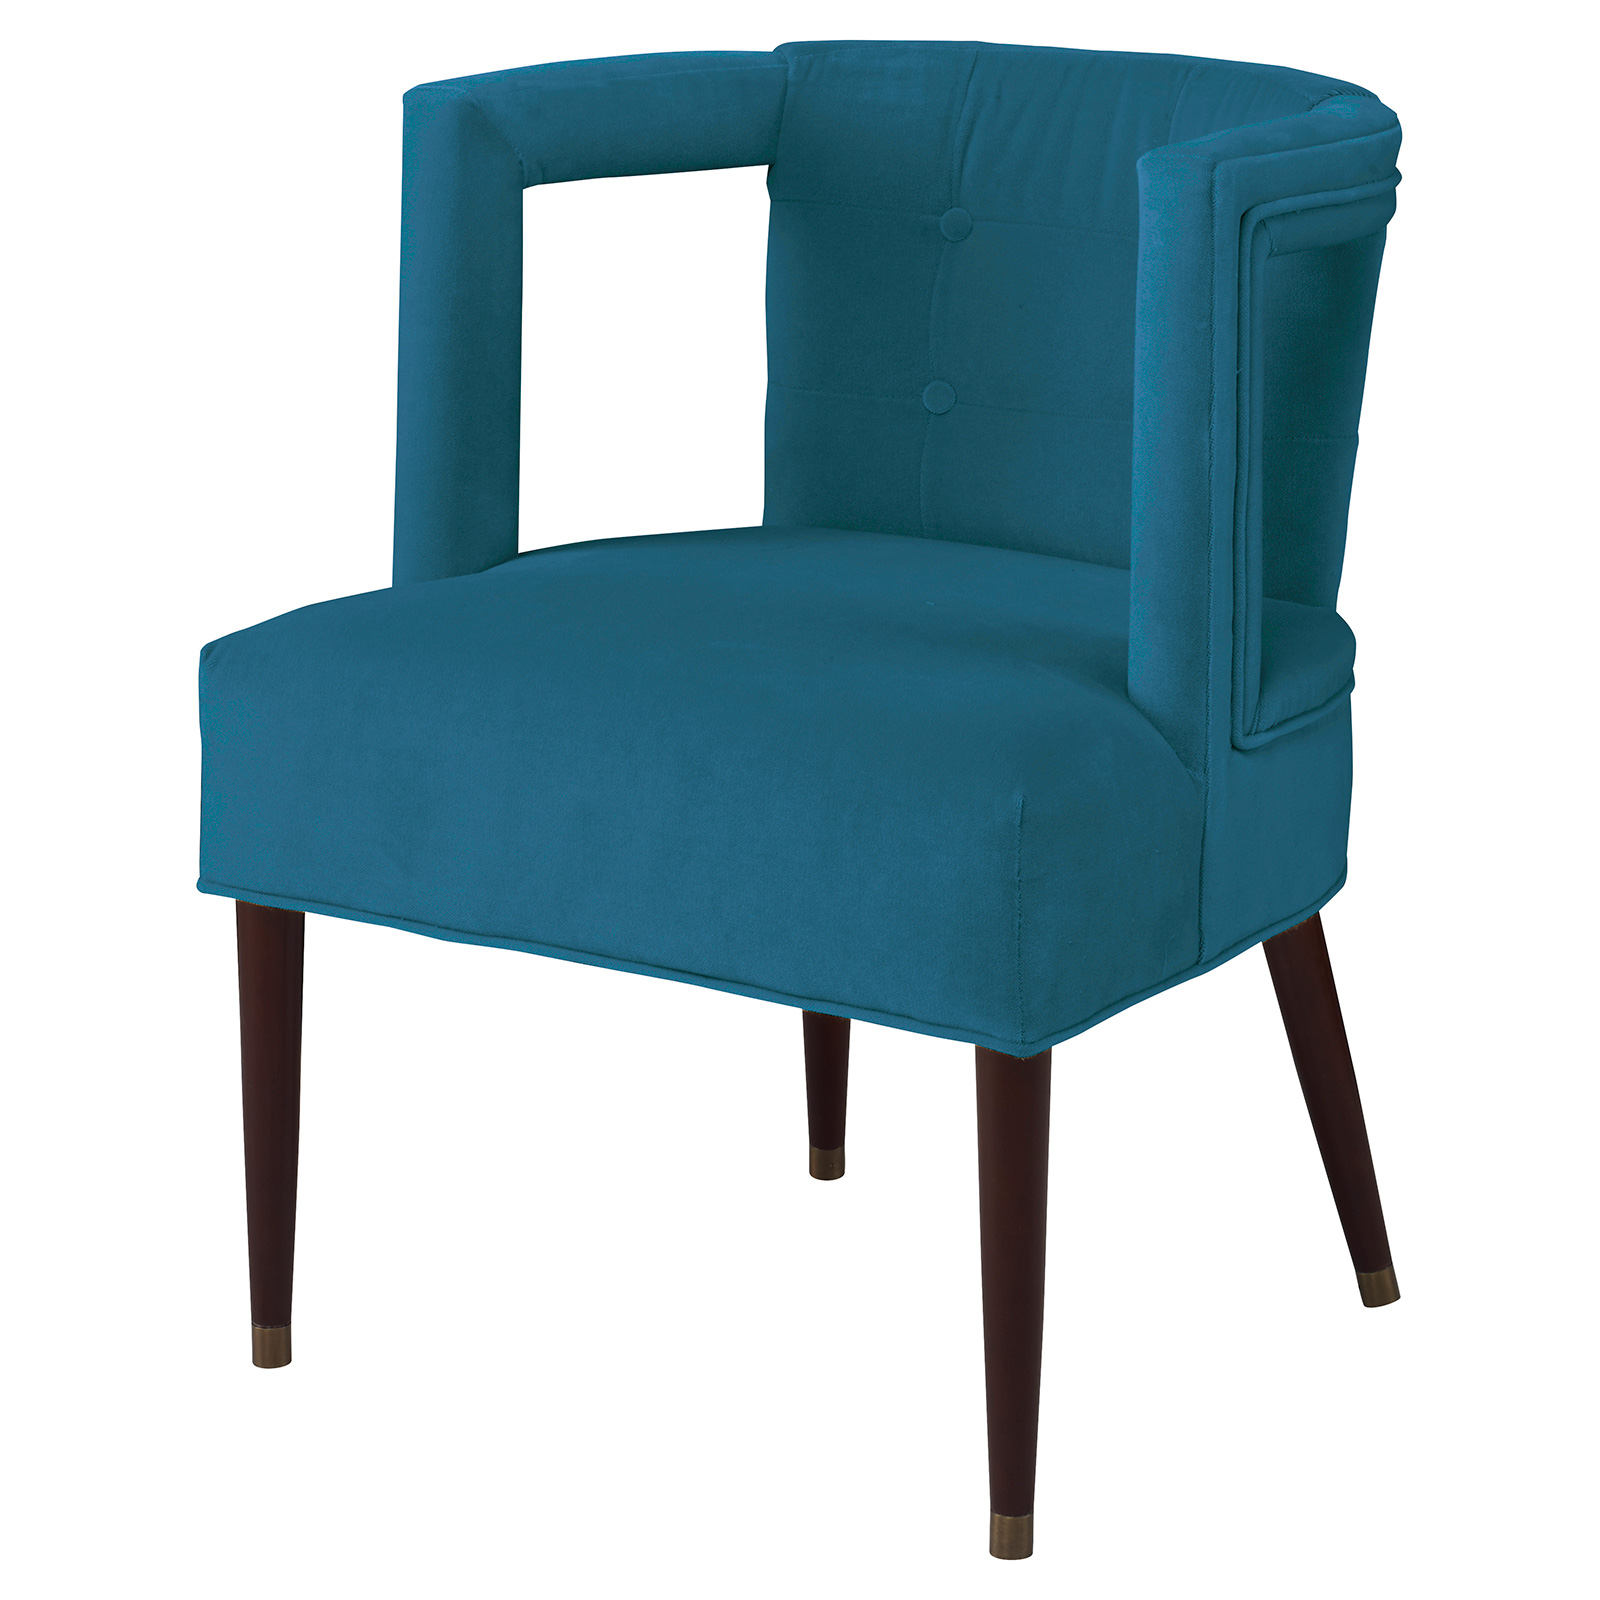 Barnaby Modern Window Arm Chair - Prussian Blue Velvet